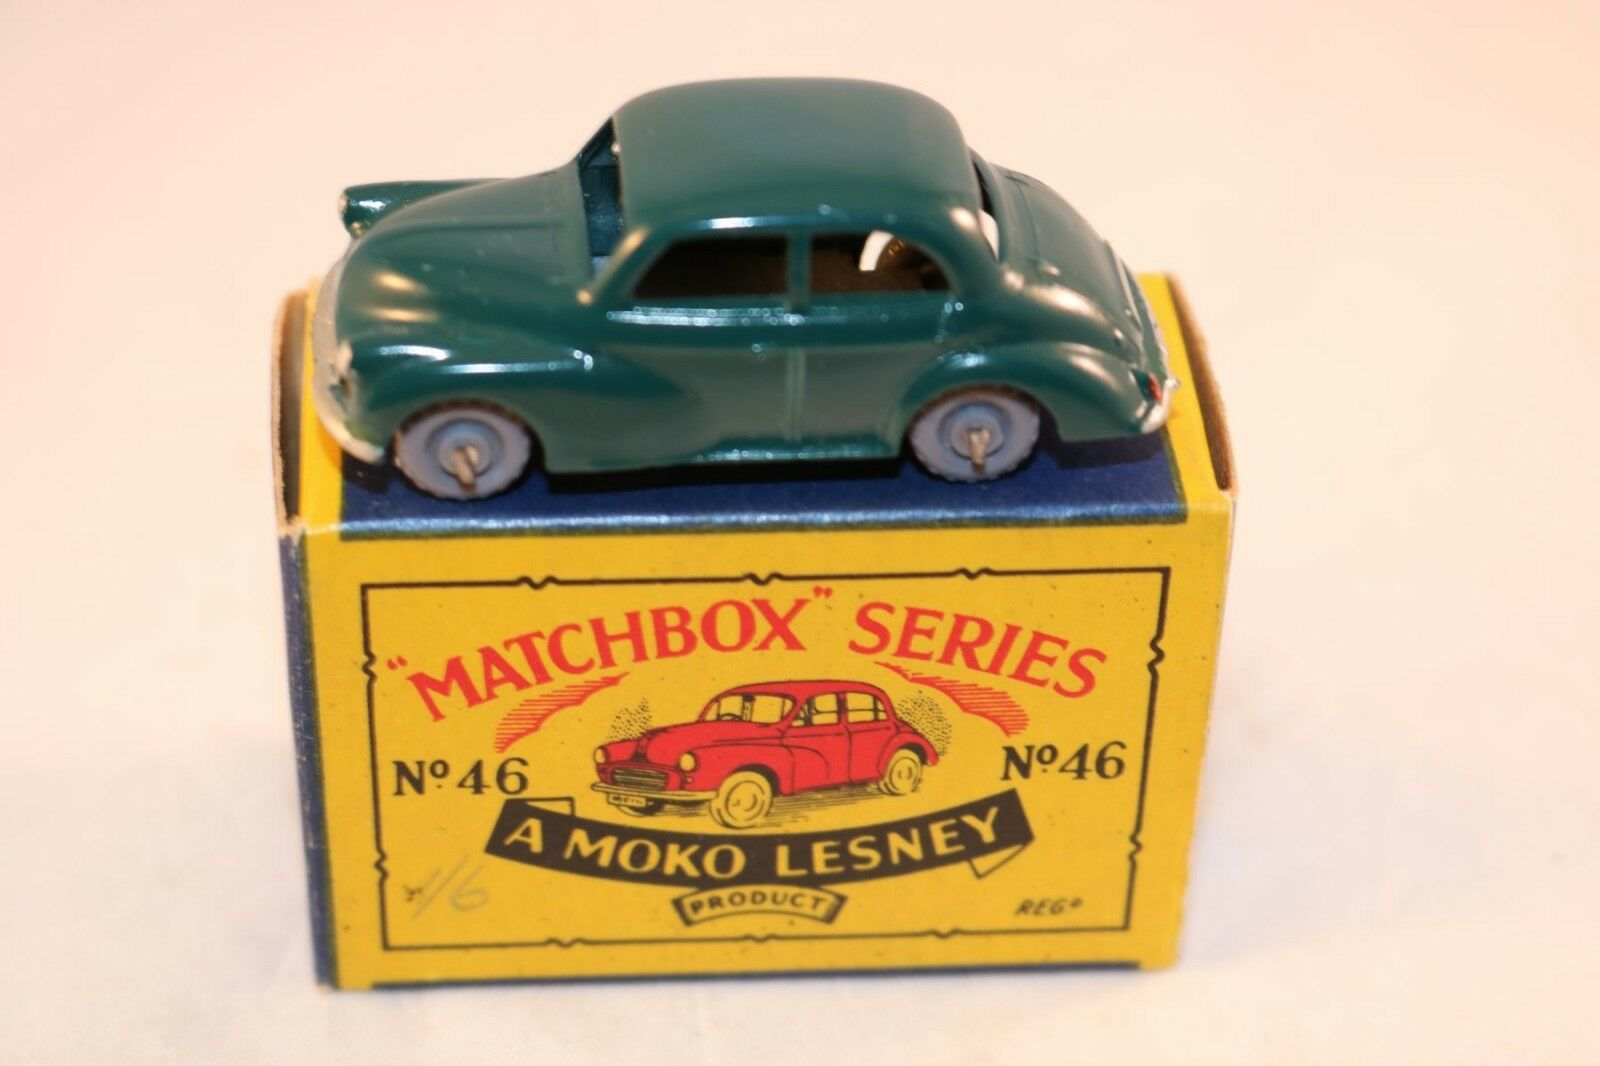 Matchbox A Moko Lesney No 46 Morris Minor 1000 with GPW 99% mint in box